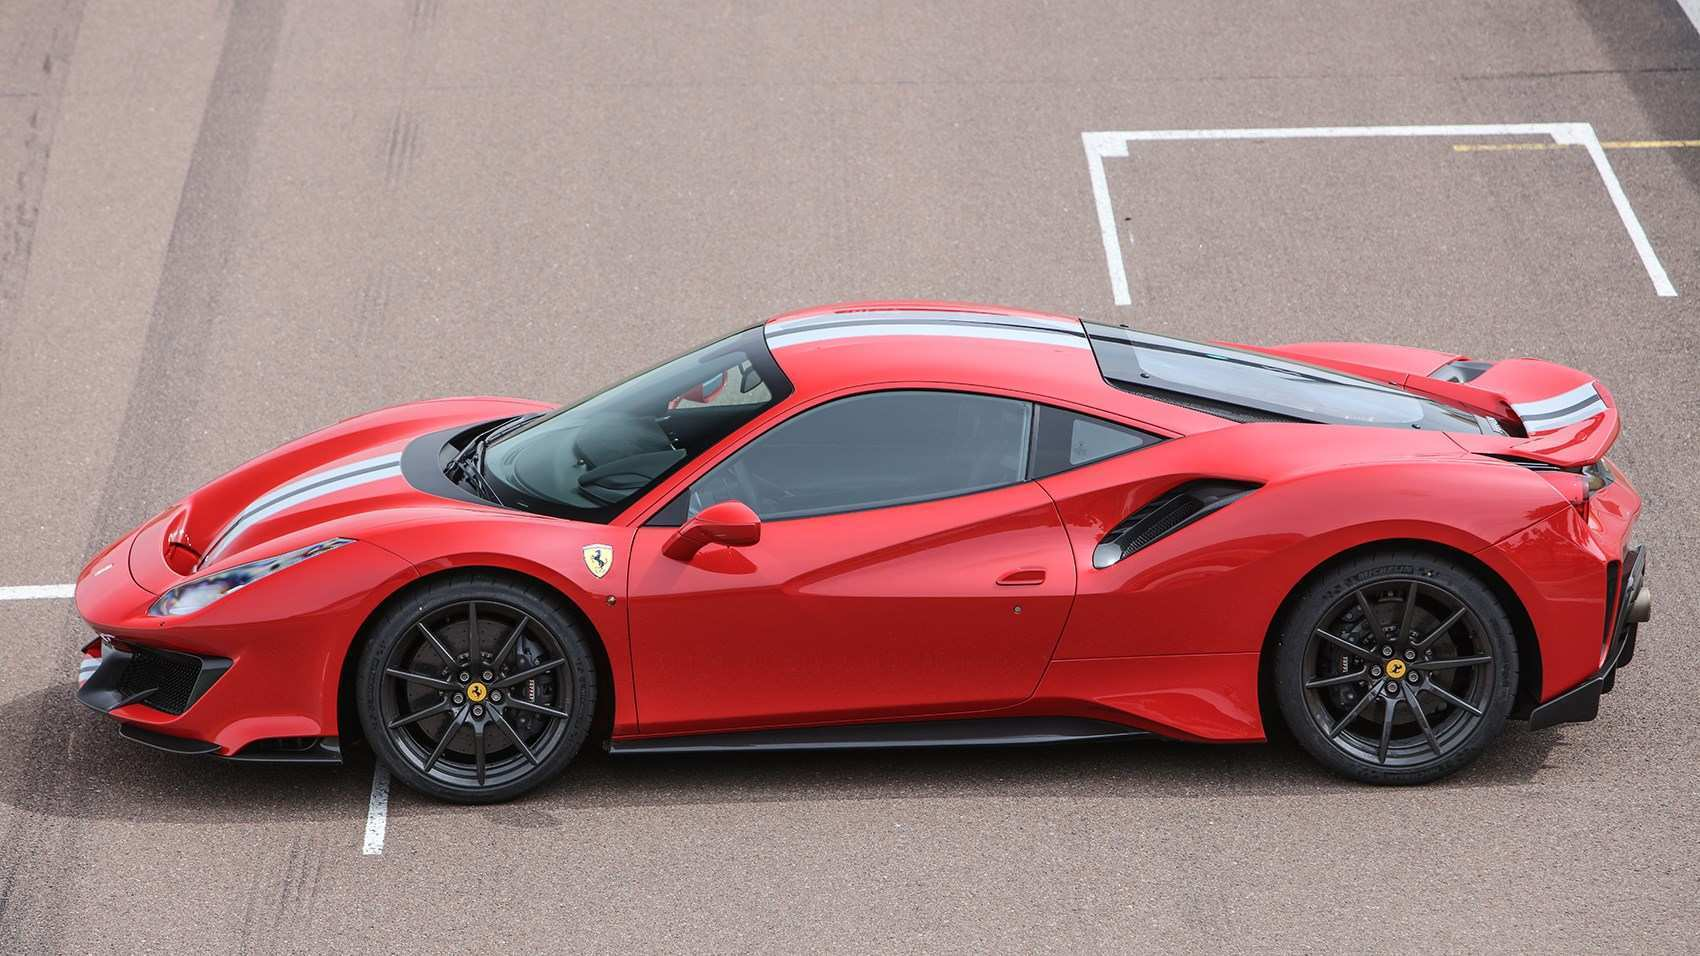 69 The Best 2019 Ferrari 488 Pista For Sale Performance And New Engine